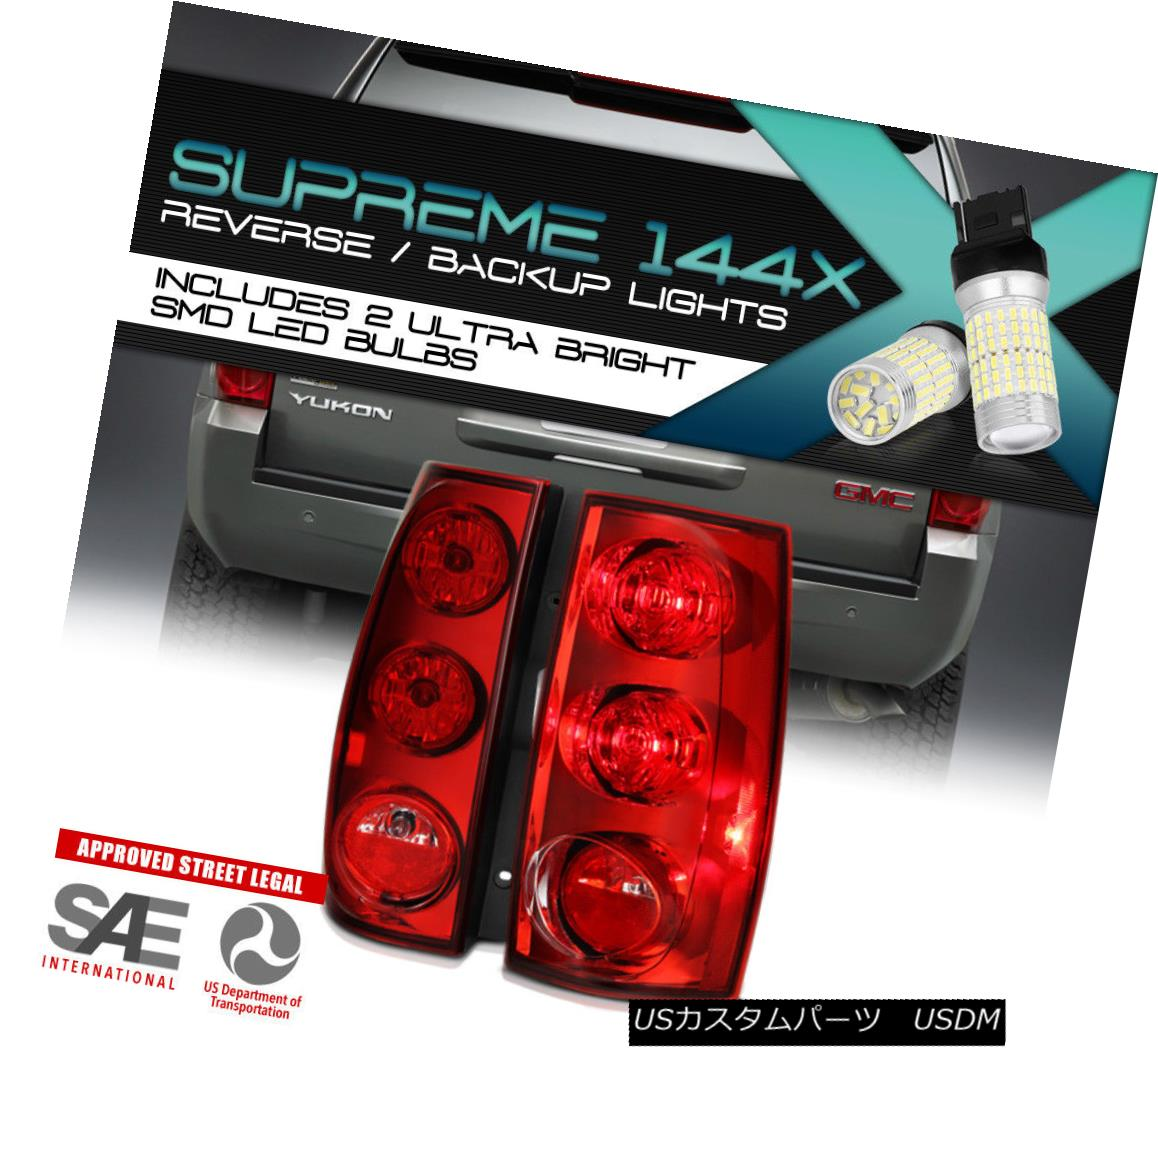 テールライト {FULL SMD REVERSE} [NEW STYLE] 2007-2014 GMC Yukon XL Suburban Tahoe Tail Lights {FULL SMD REVERSE} [NEW STYLE] 2007-2014 GMC Yukon XL郊外のタホテールライト